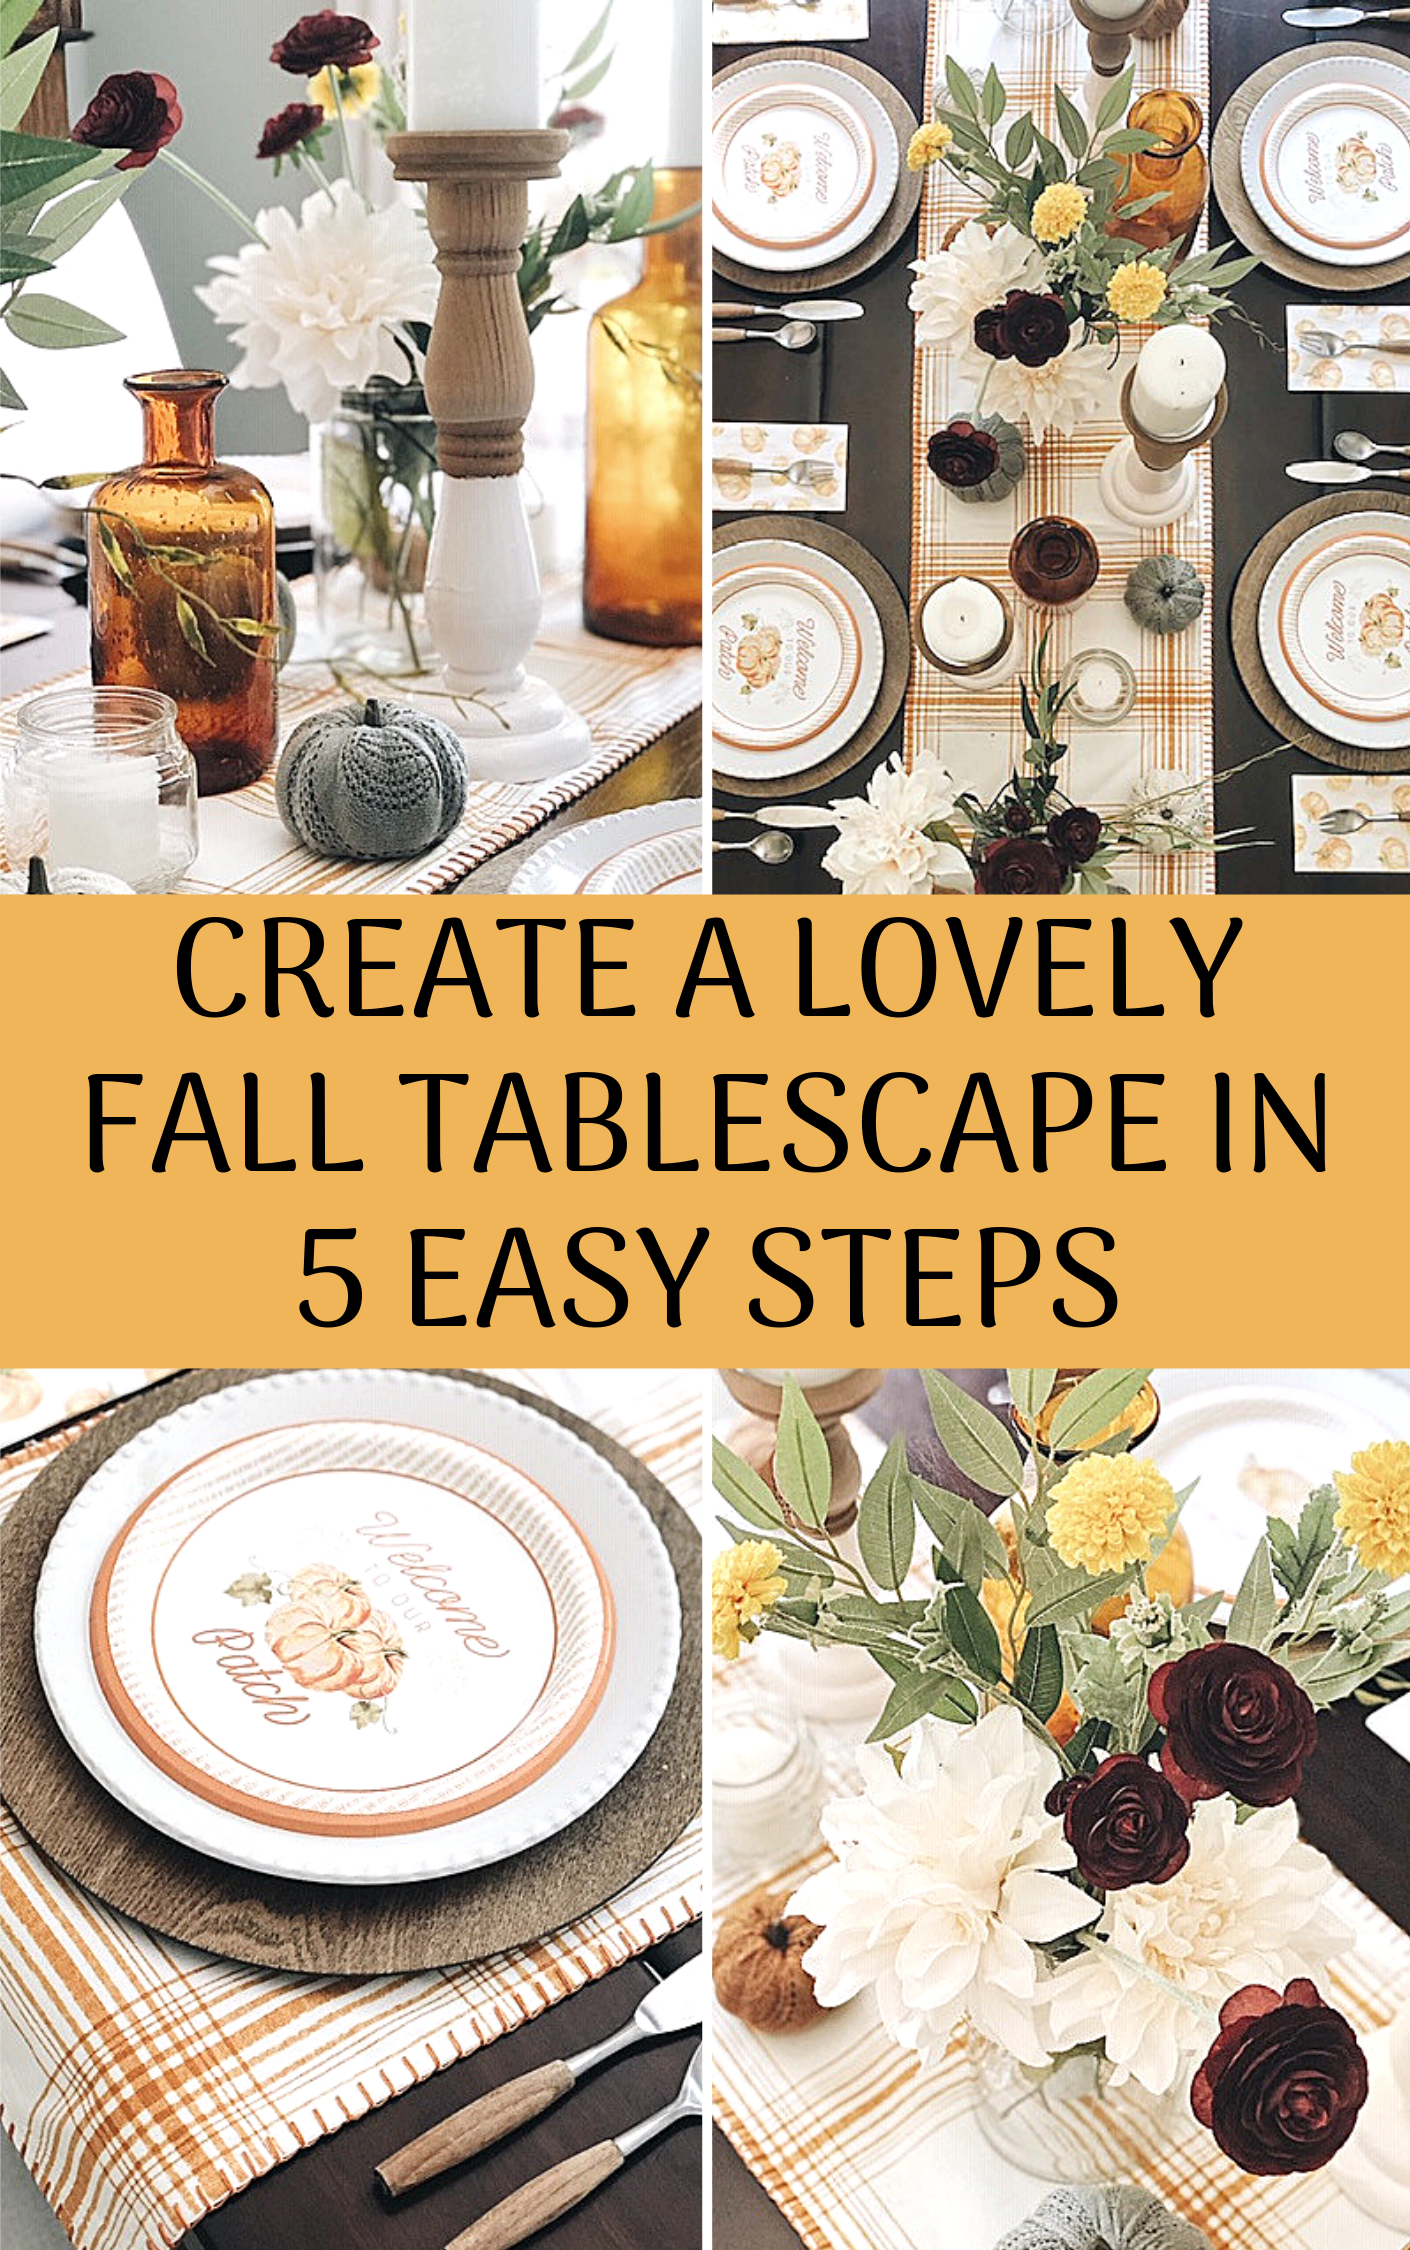 Create A Lovely Fall Tablescape In 5 Easy Steps.png